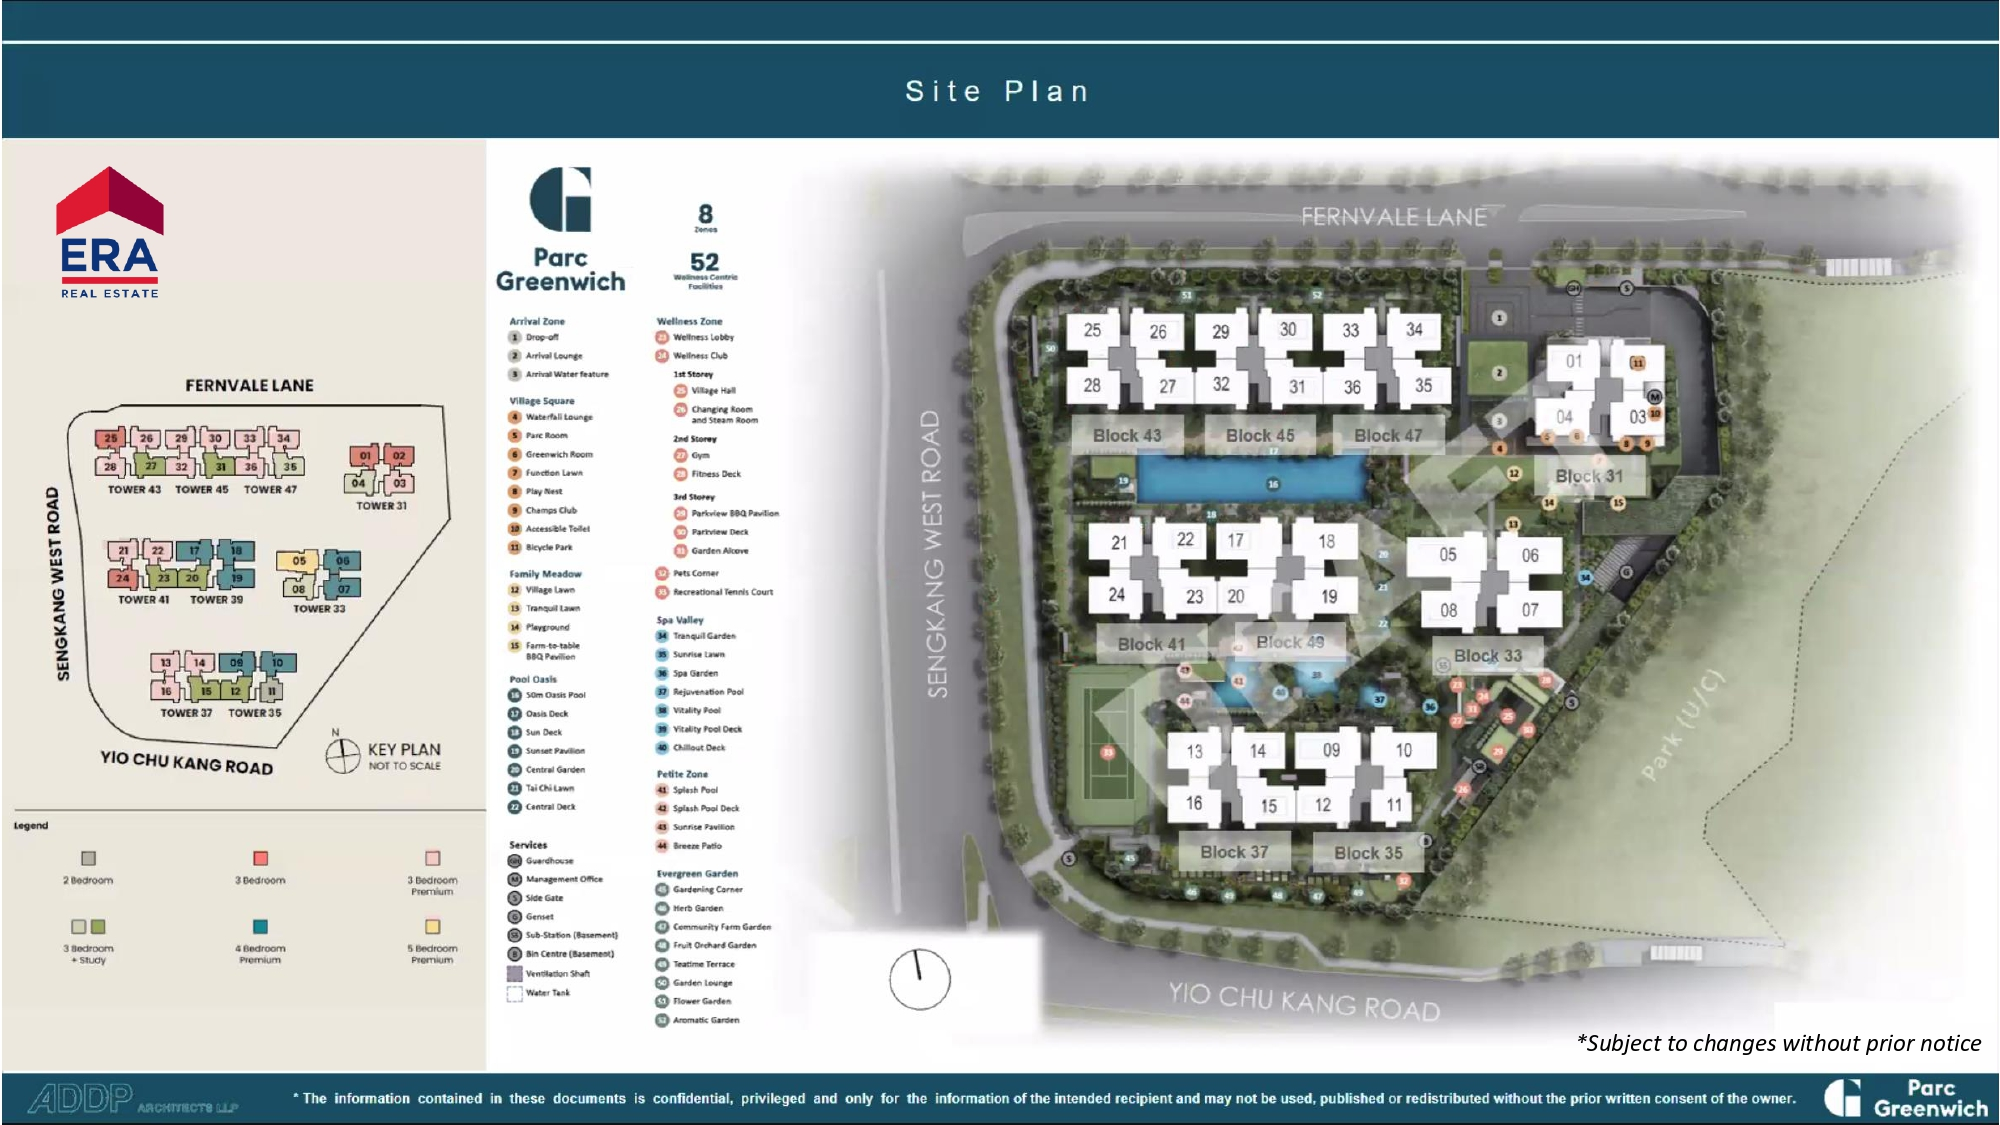 Parc Greenwich Site Plan with Bedroom Type